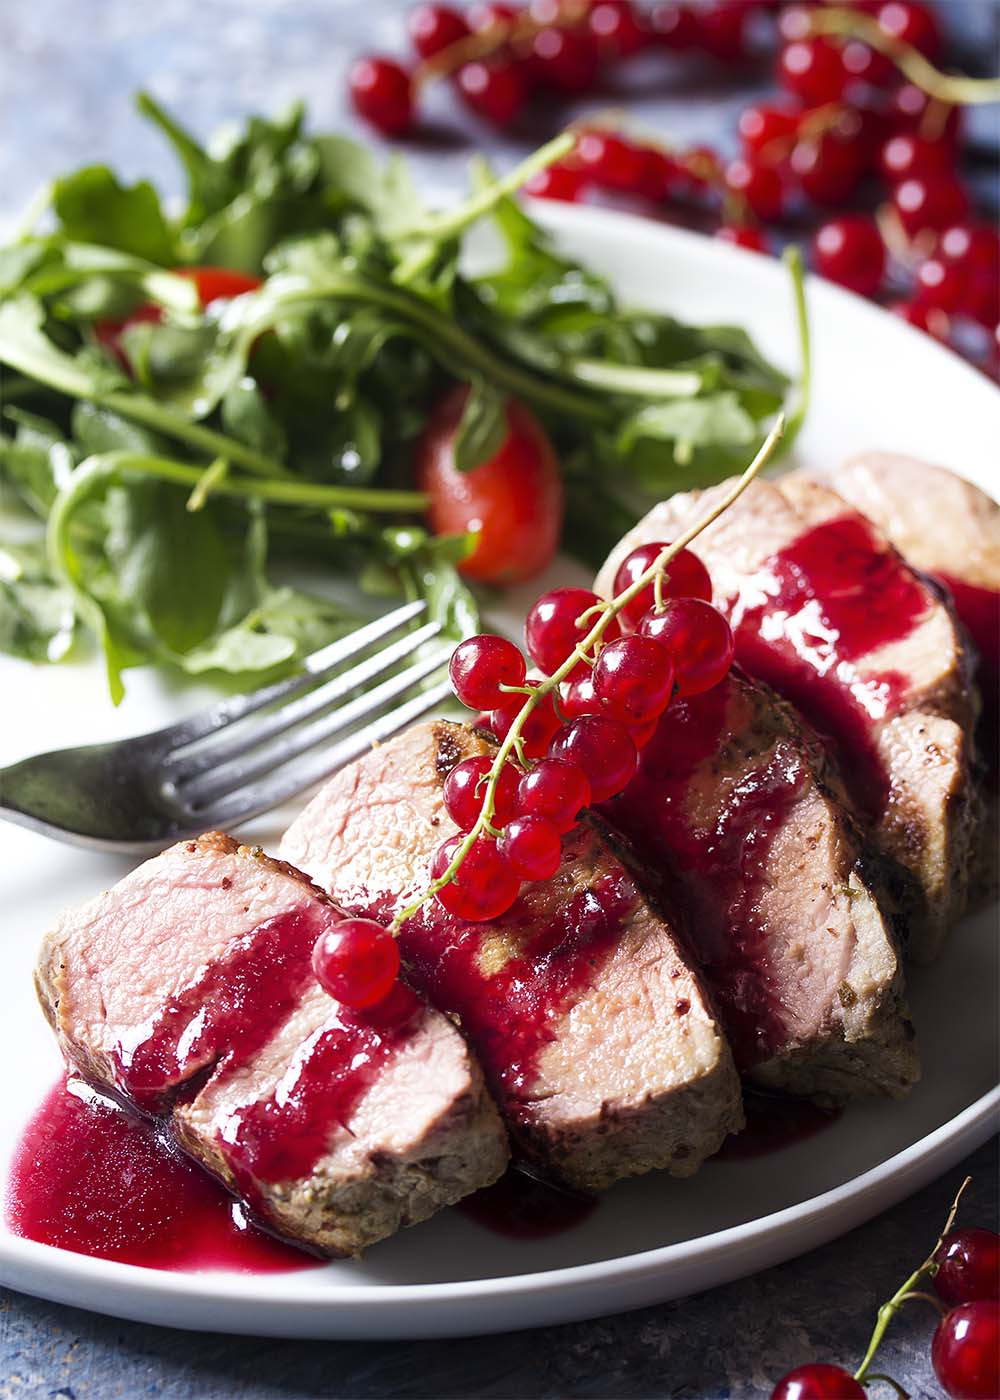 A plate with slices of roast pork tenderloin. The slices are topped with red currant sauce.